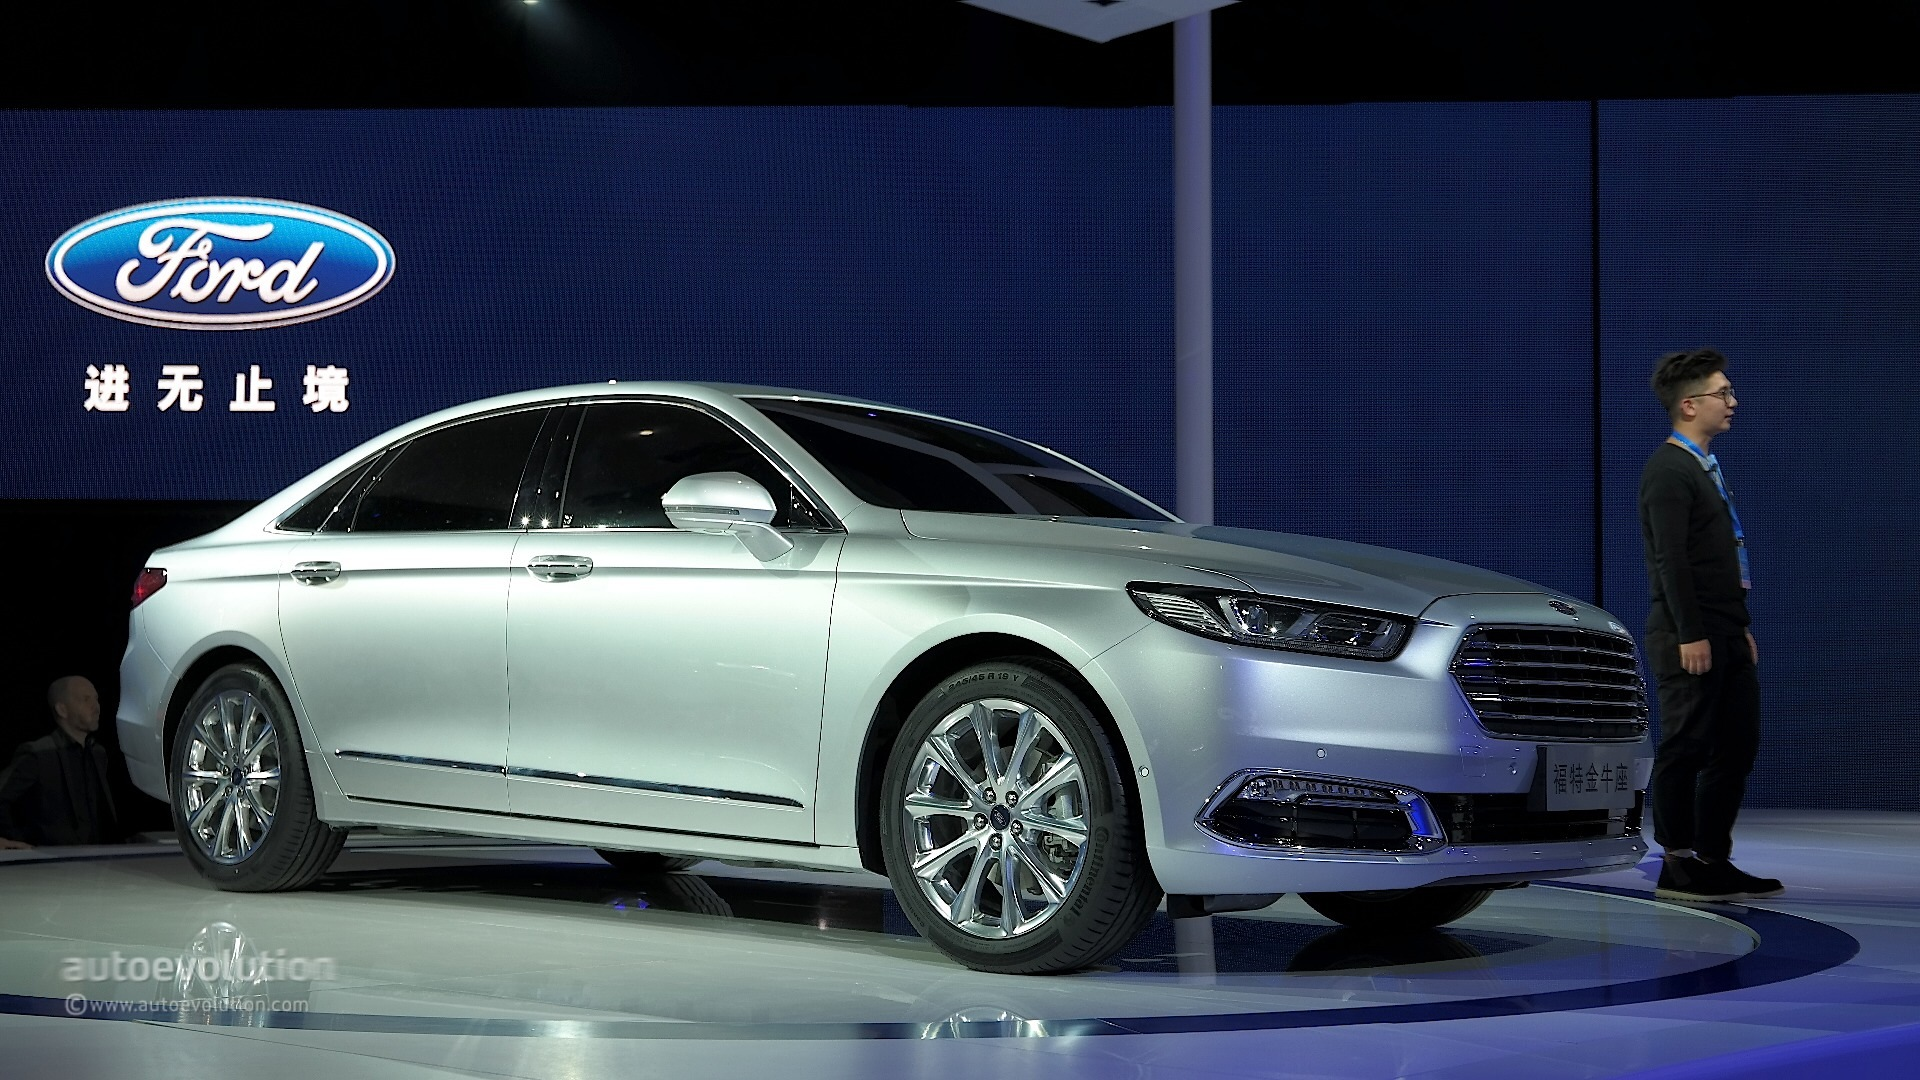 2016 Ford Taurus Shows Up in Shanghai with Long Wheelbase, Premium Features - autoevolution